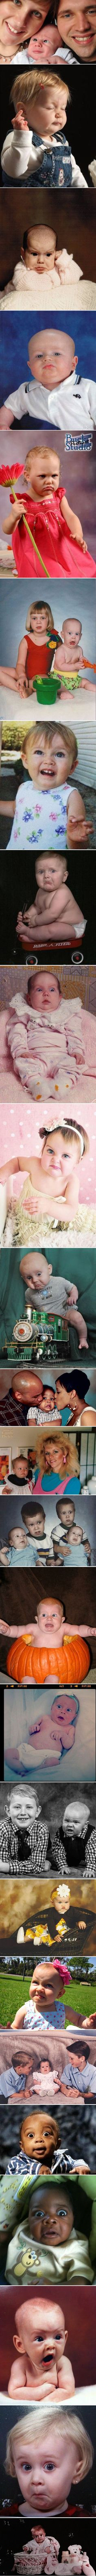 Funny kids and baby photographs taken at the perfectly wrong time.